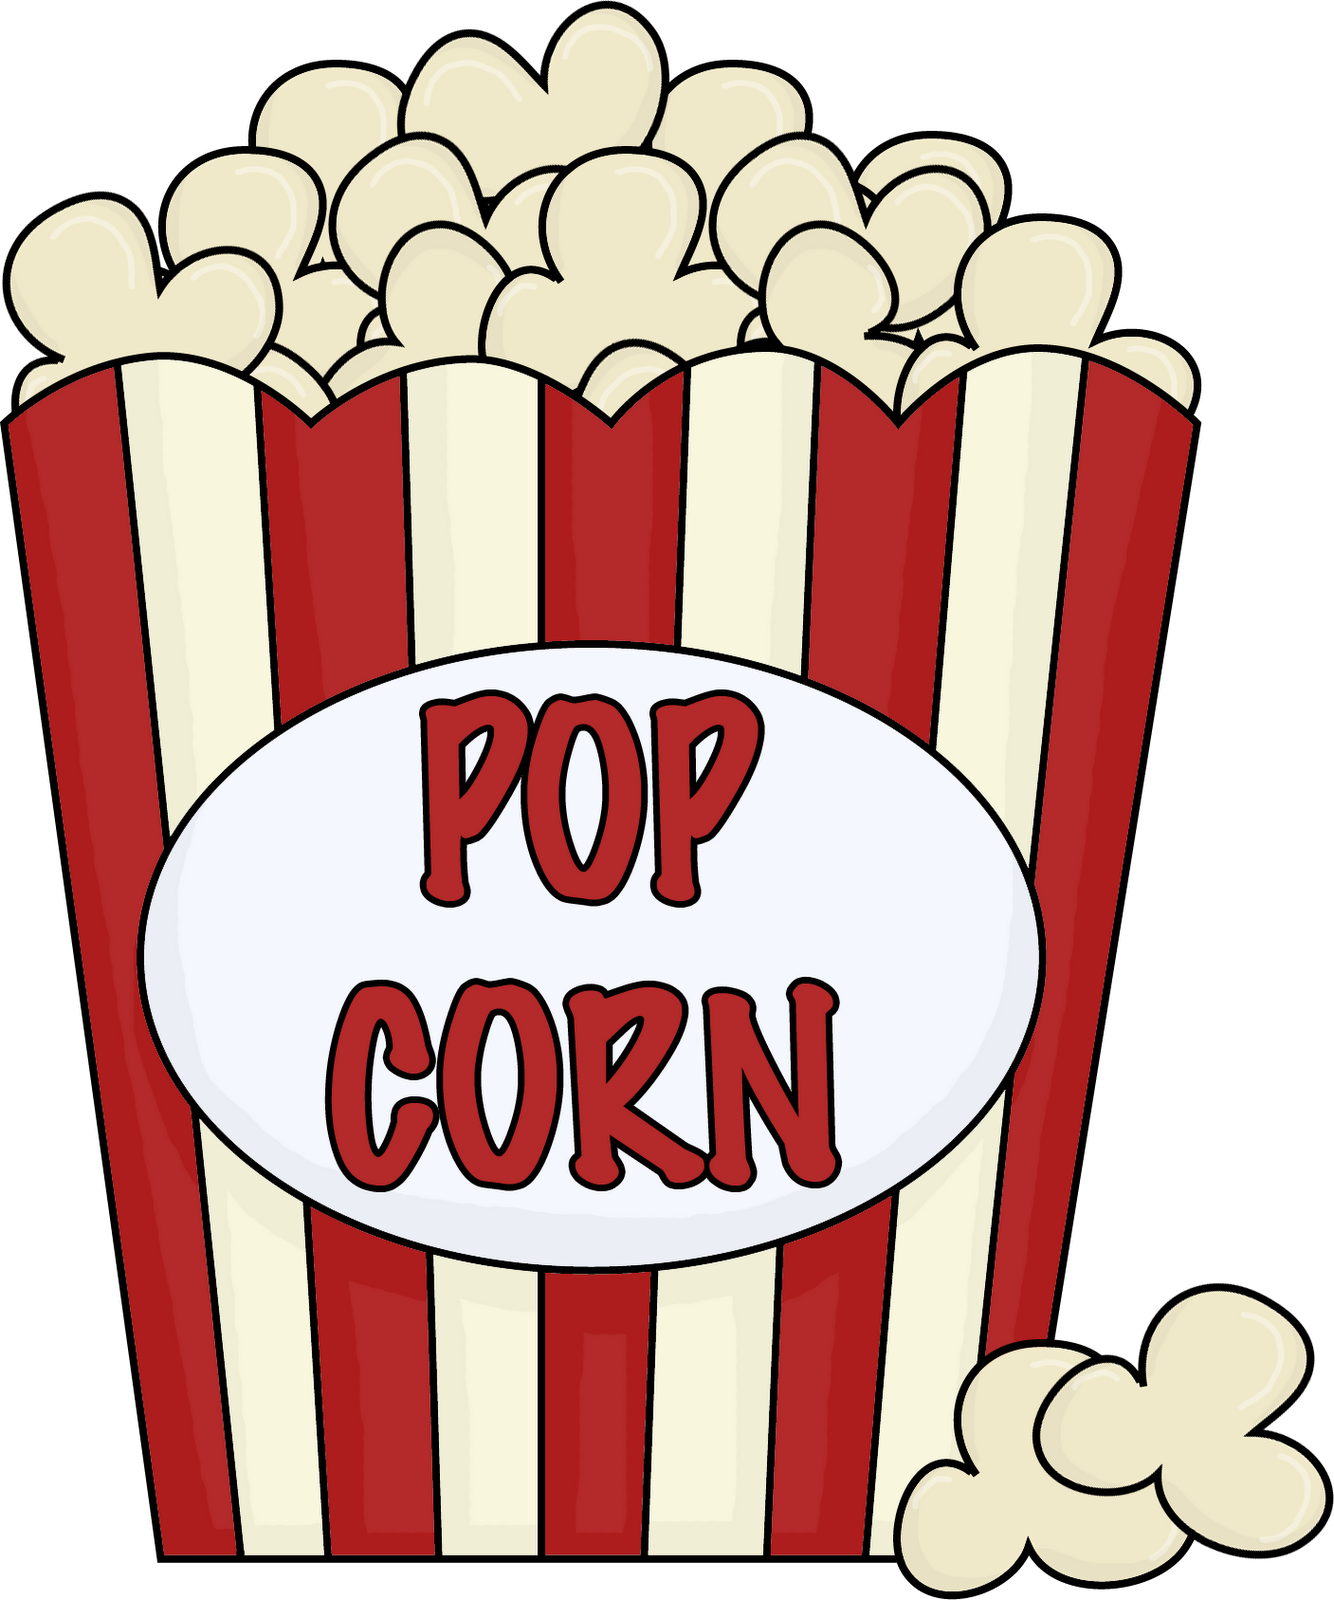 Pickles clipart popcorn pickle. Just keep swimming mama